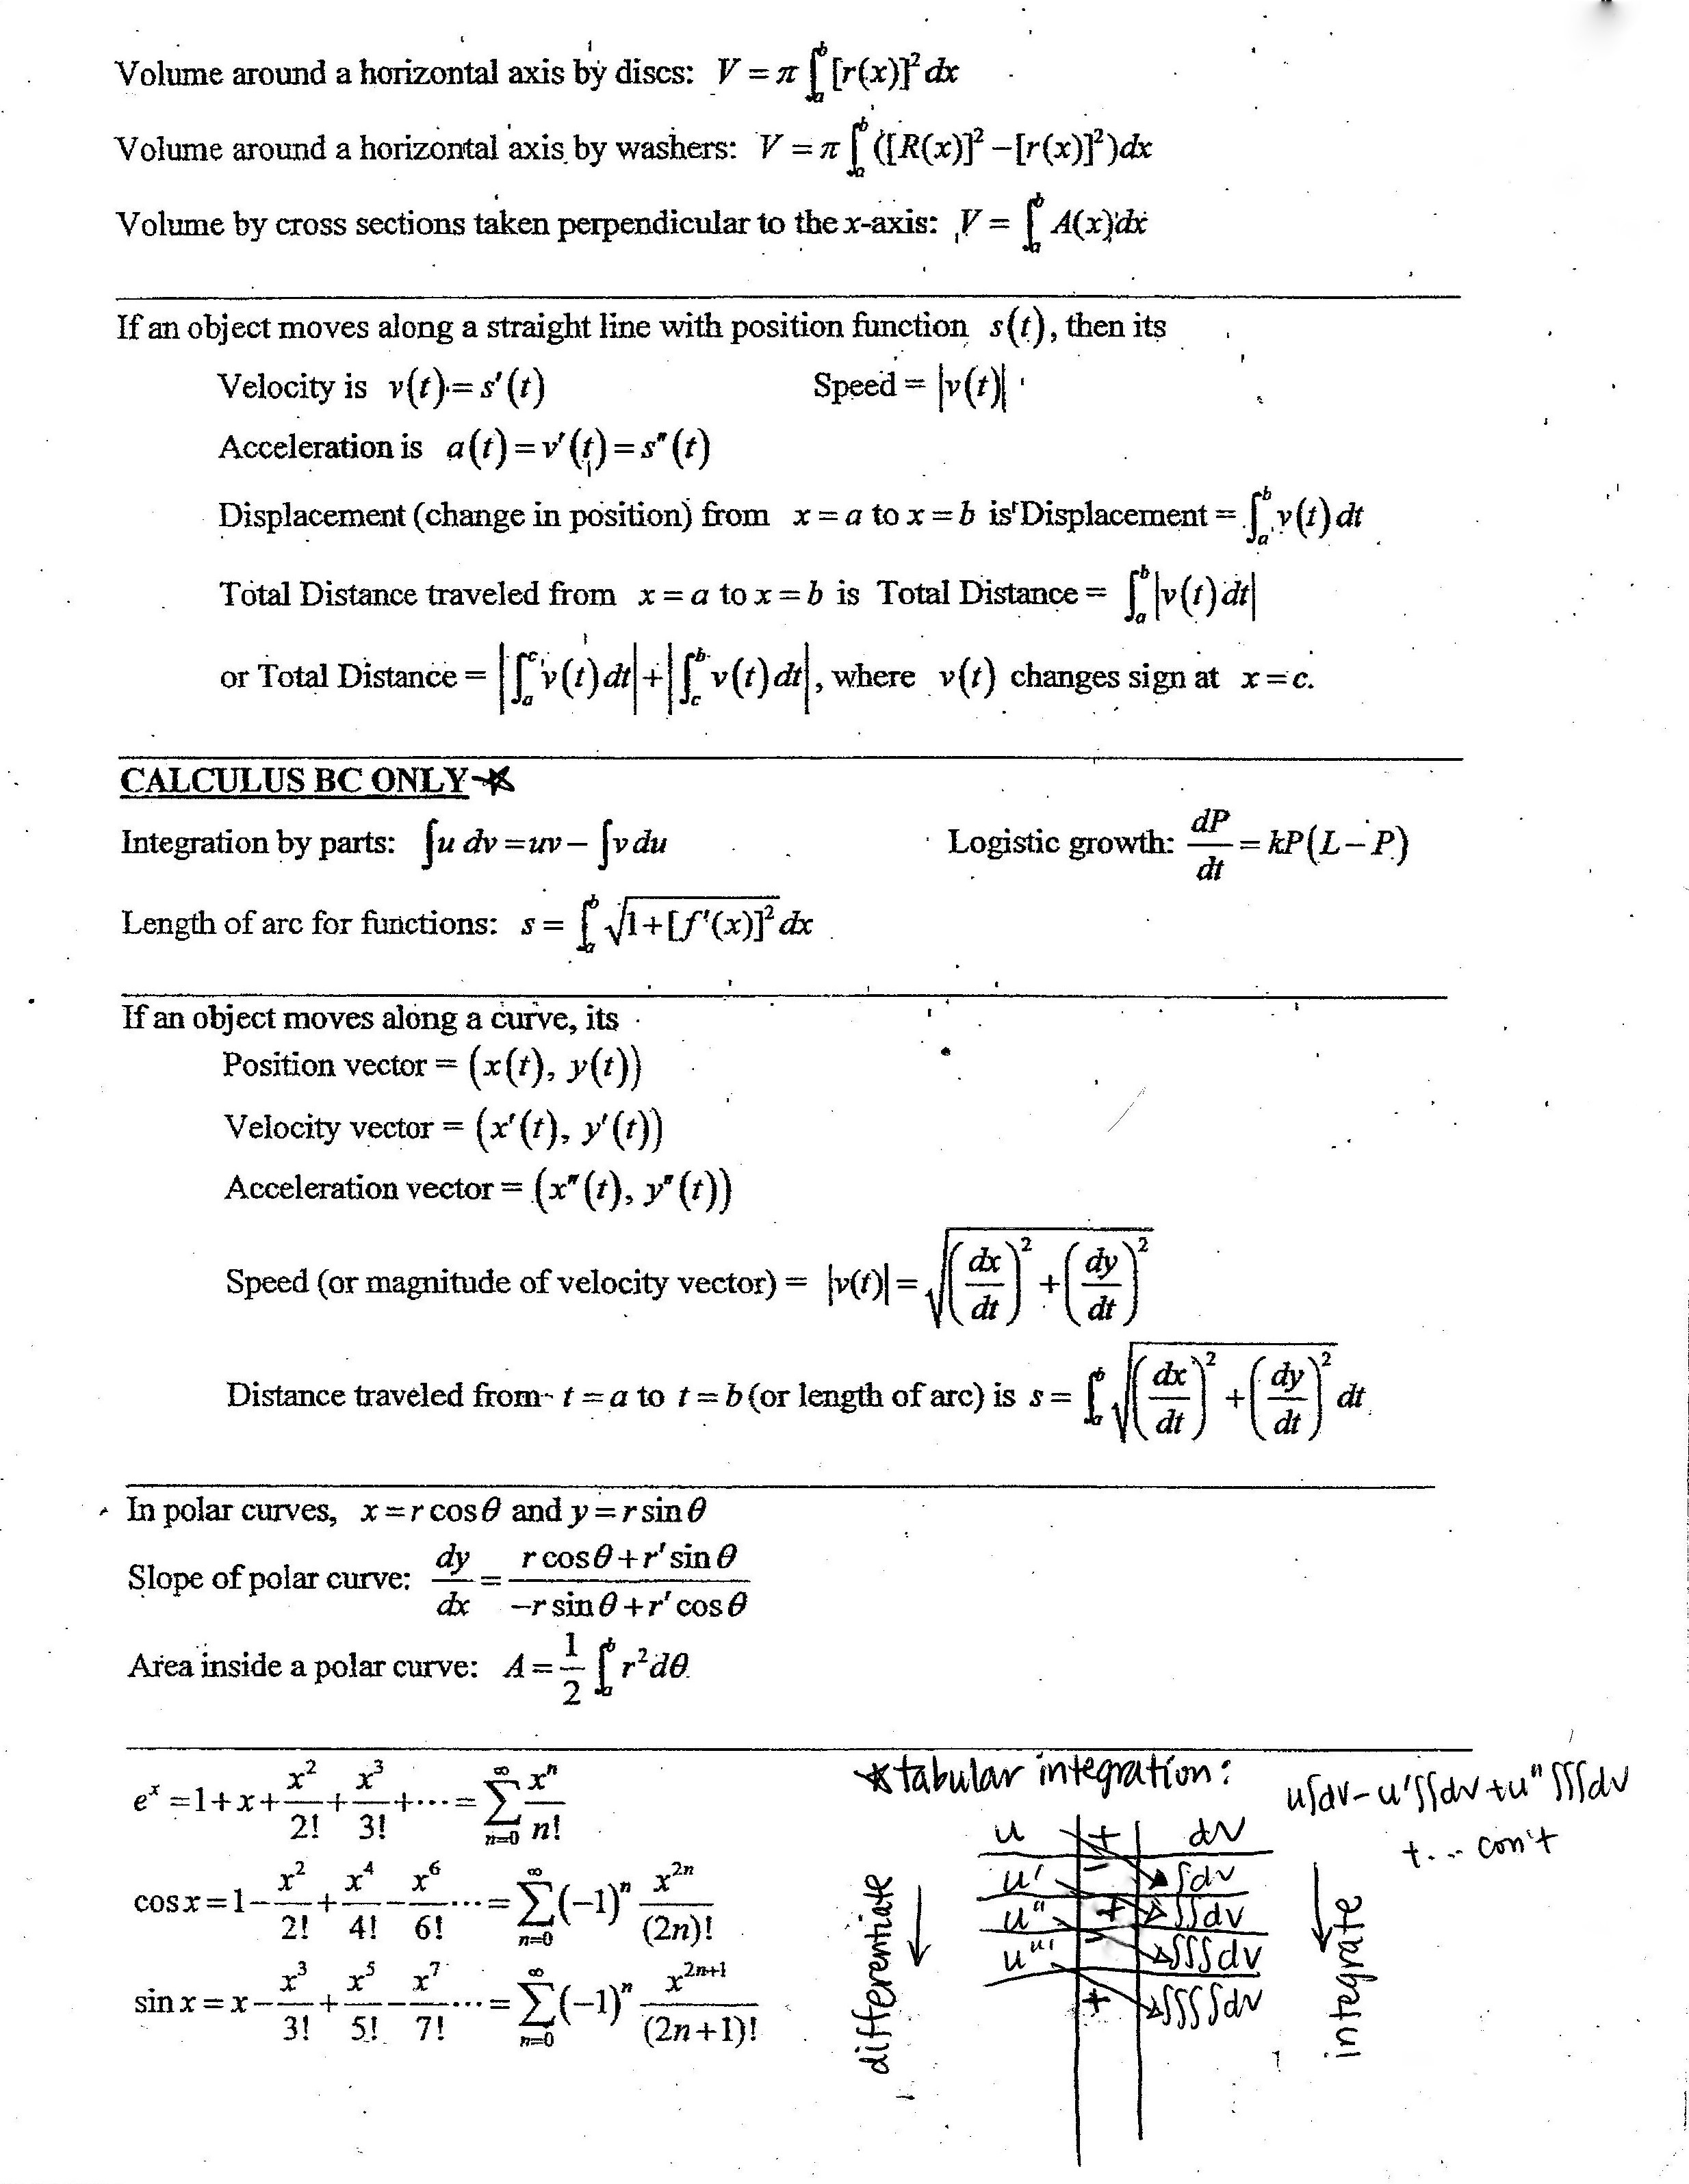 Integral Formulas Sheet images